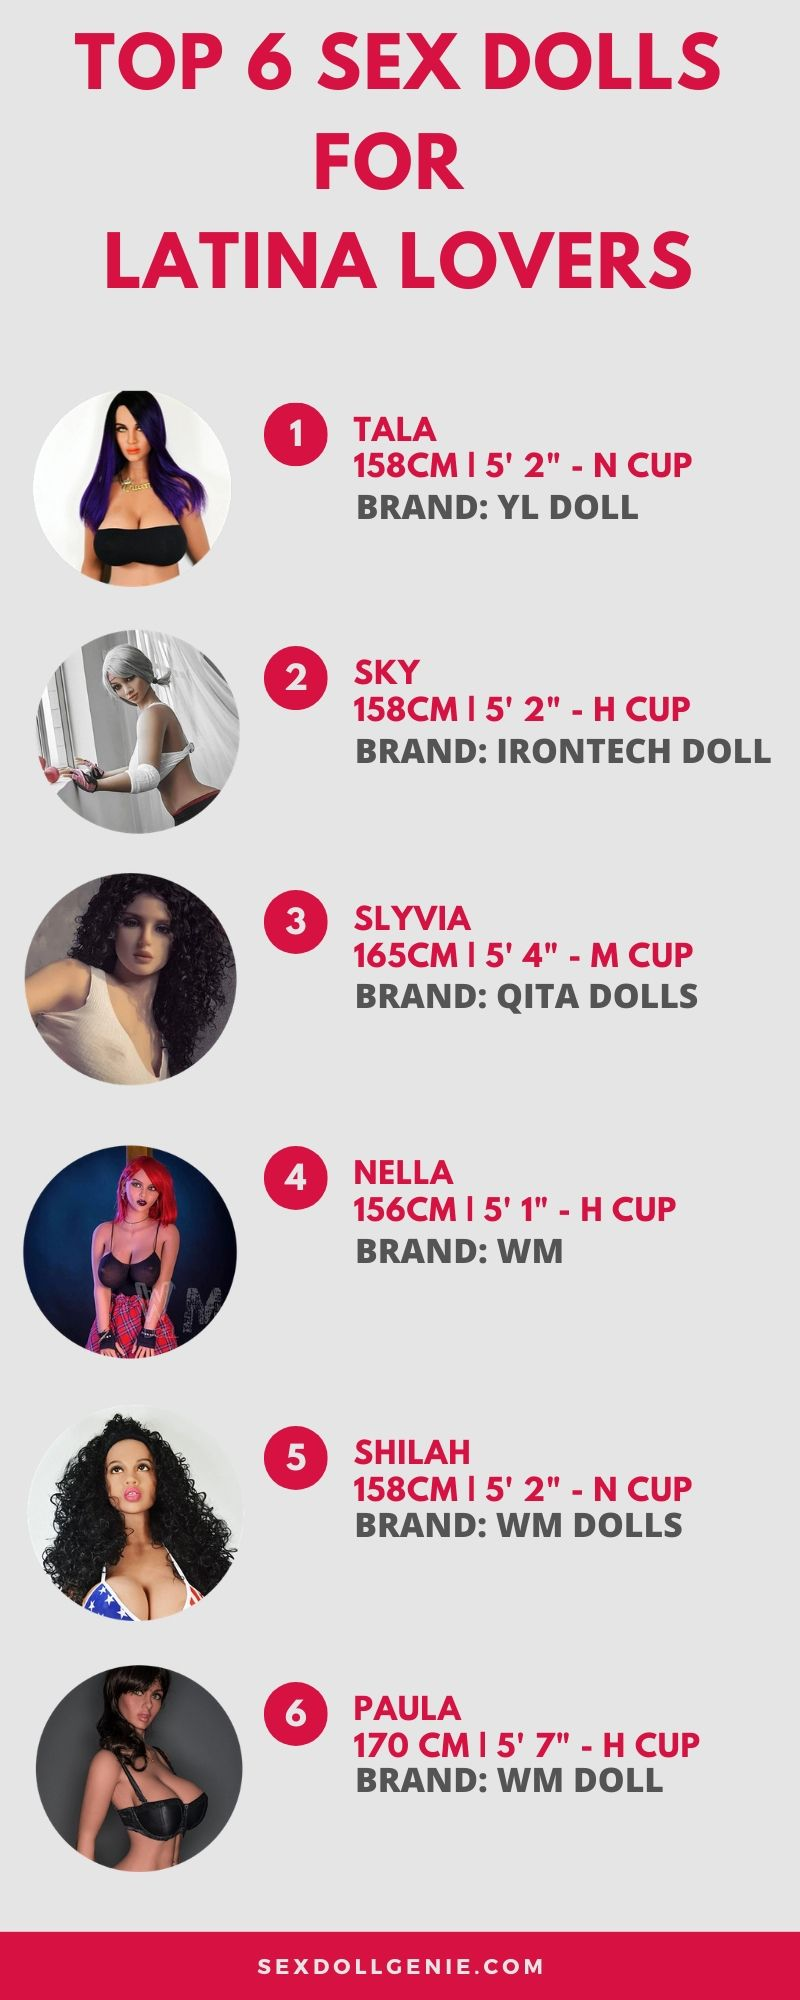 Top 6 Sex Dolls for Latina Lovers infographic